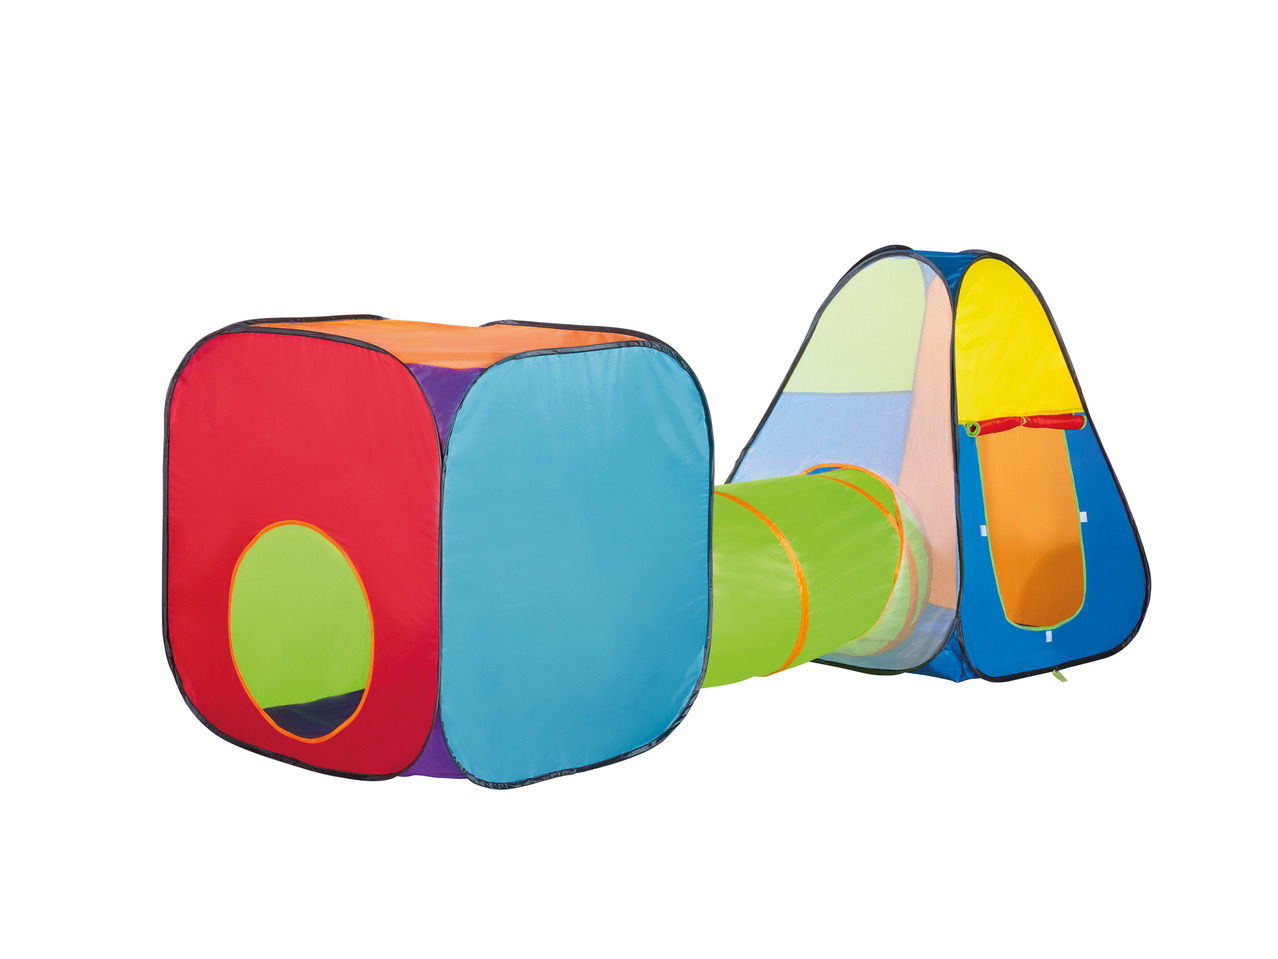 release date 938b7 9bbf9 Playtive Junior Play Tent with Tunnel1 - Lidl — Great ...